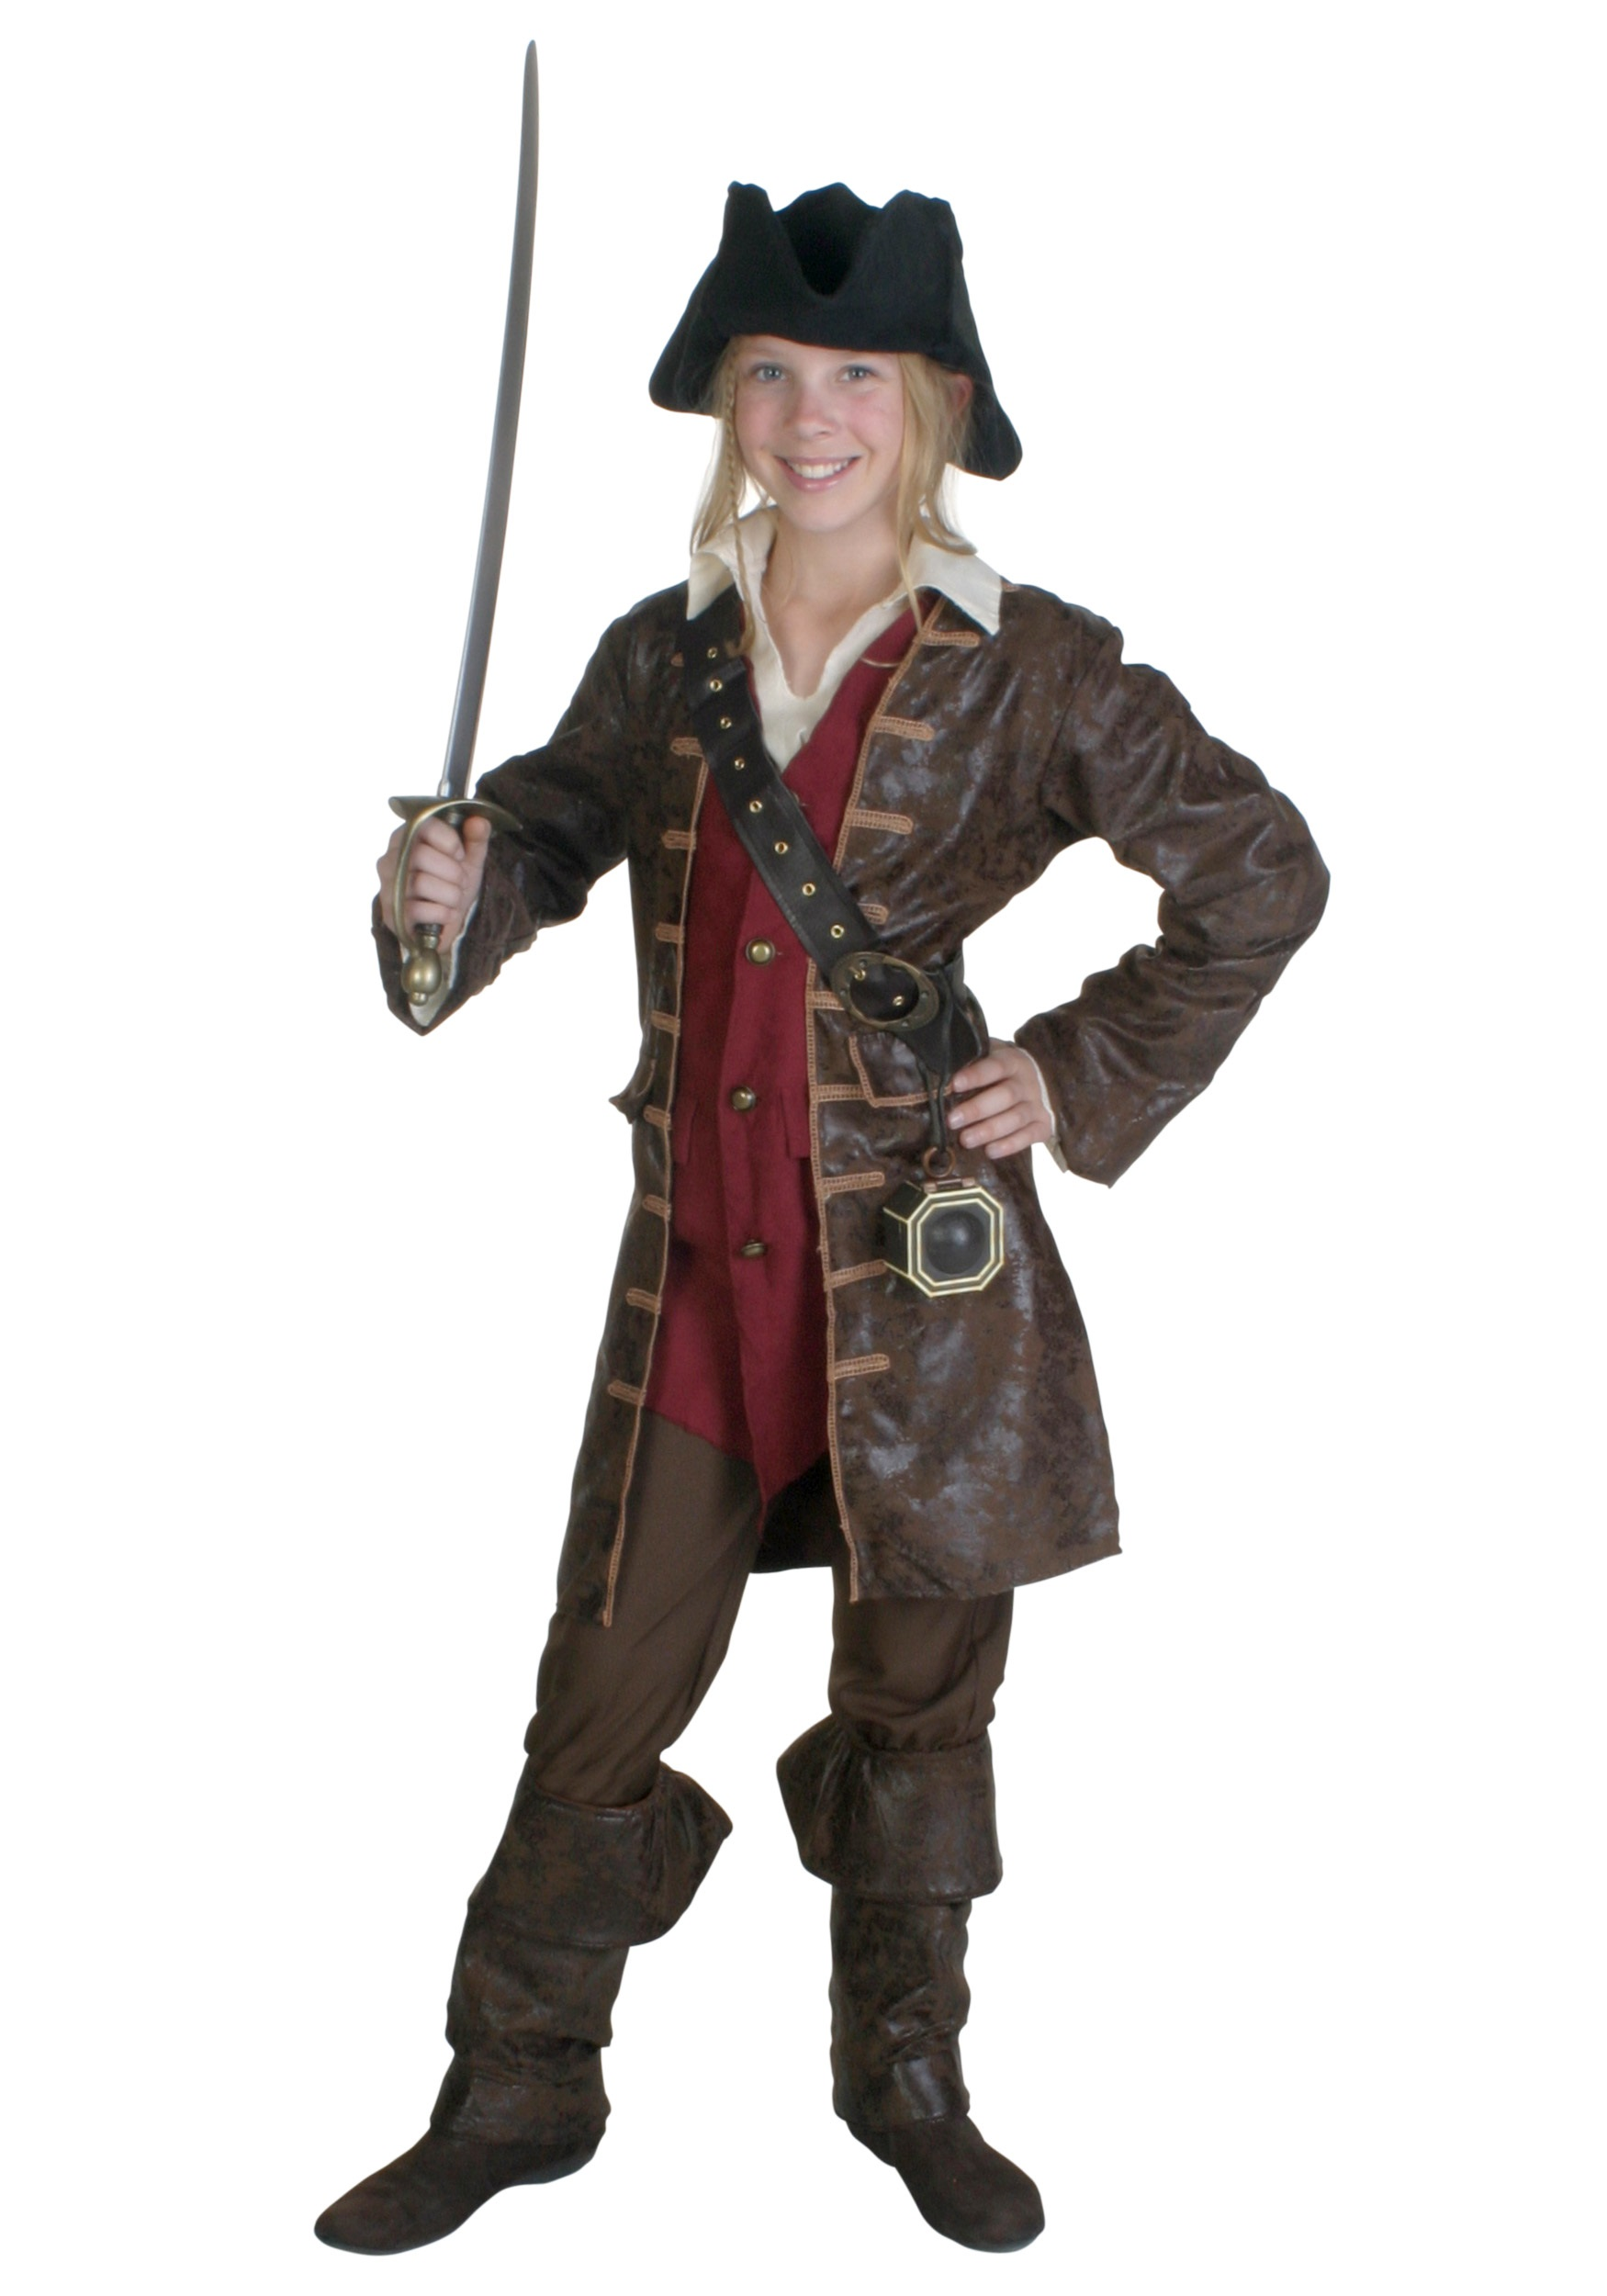 Girls Teen Pillaging Pirate Costume  sc 1 st  Halloween Costume Ideas & Teen Halloween Costume Ideas - Halloween Costumes for Teens